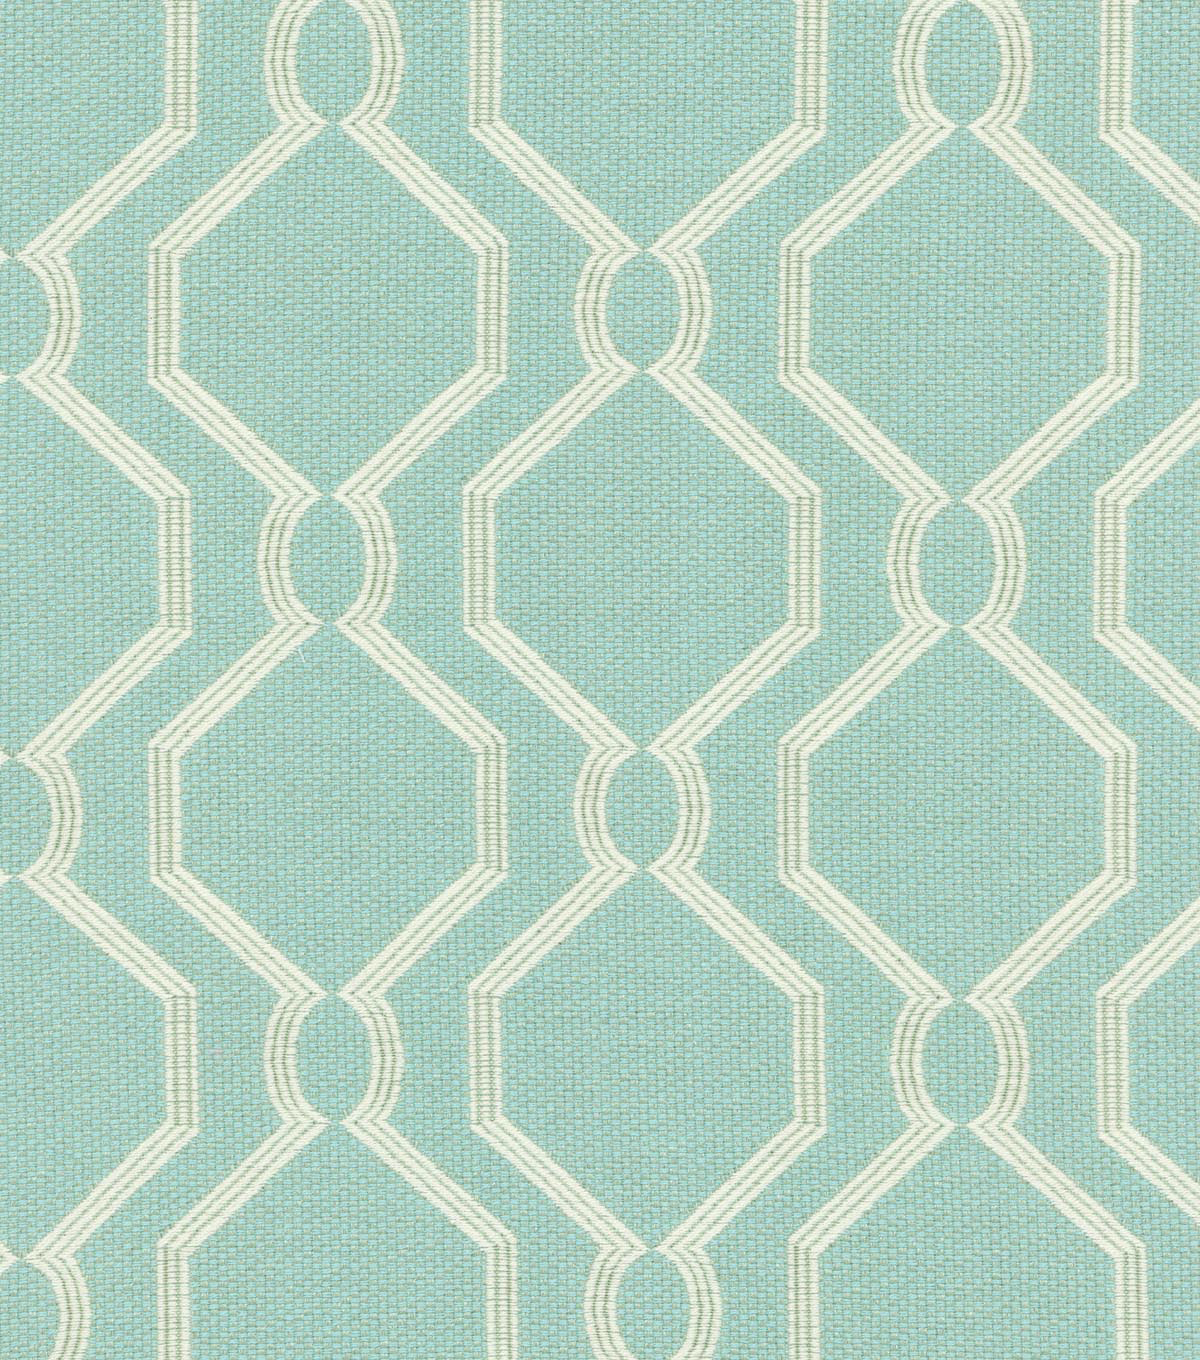 Home Decor 8\u0022x8\u0022 Swatch Fabric-PK Lifestyles Laneway Aegean